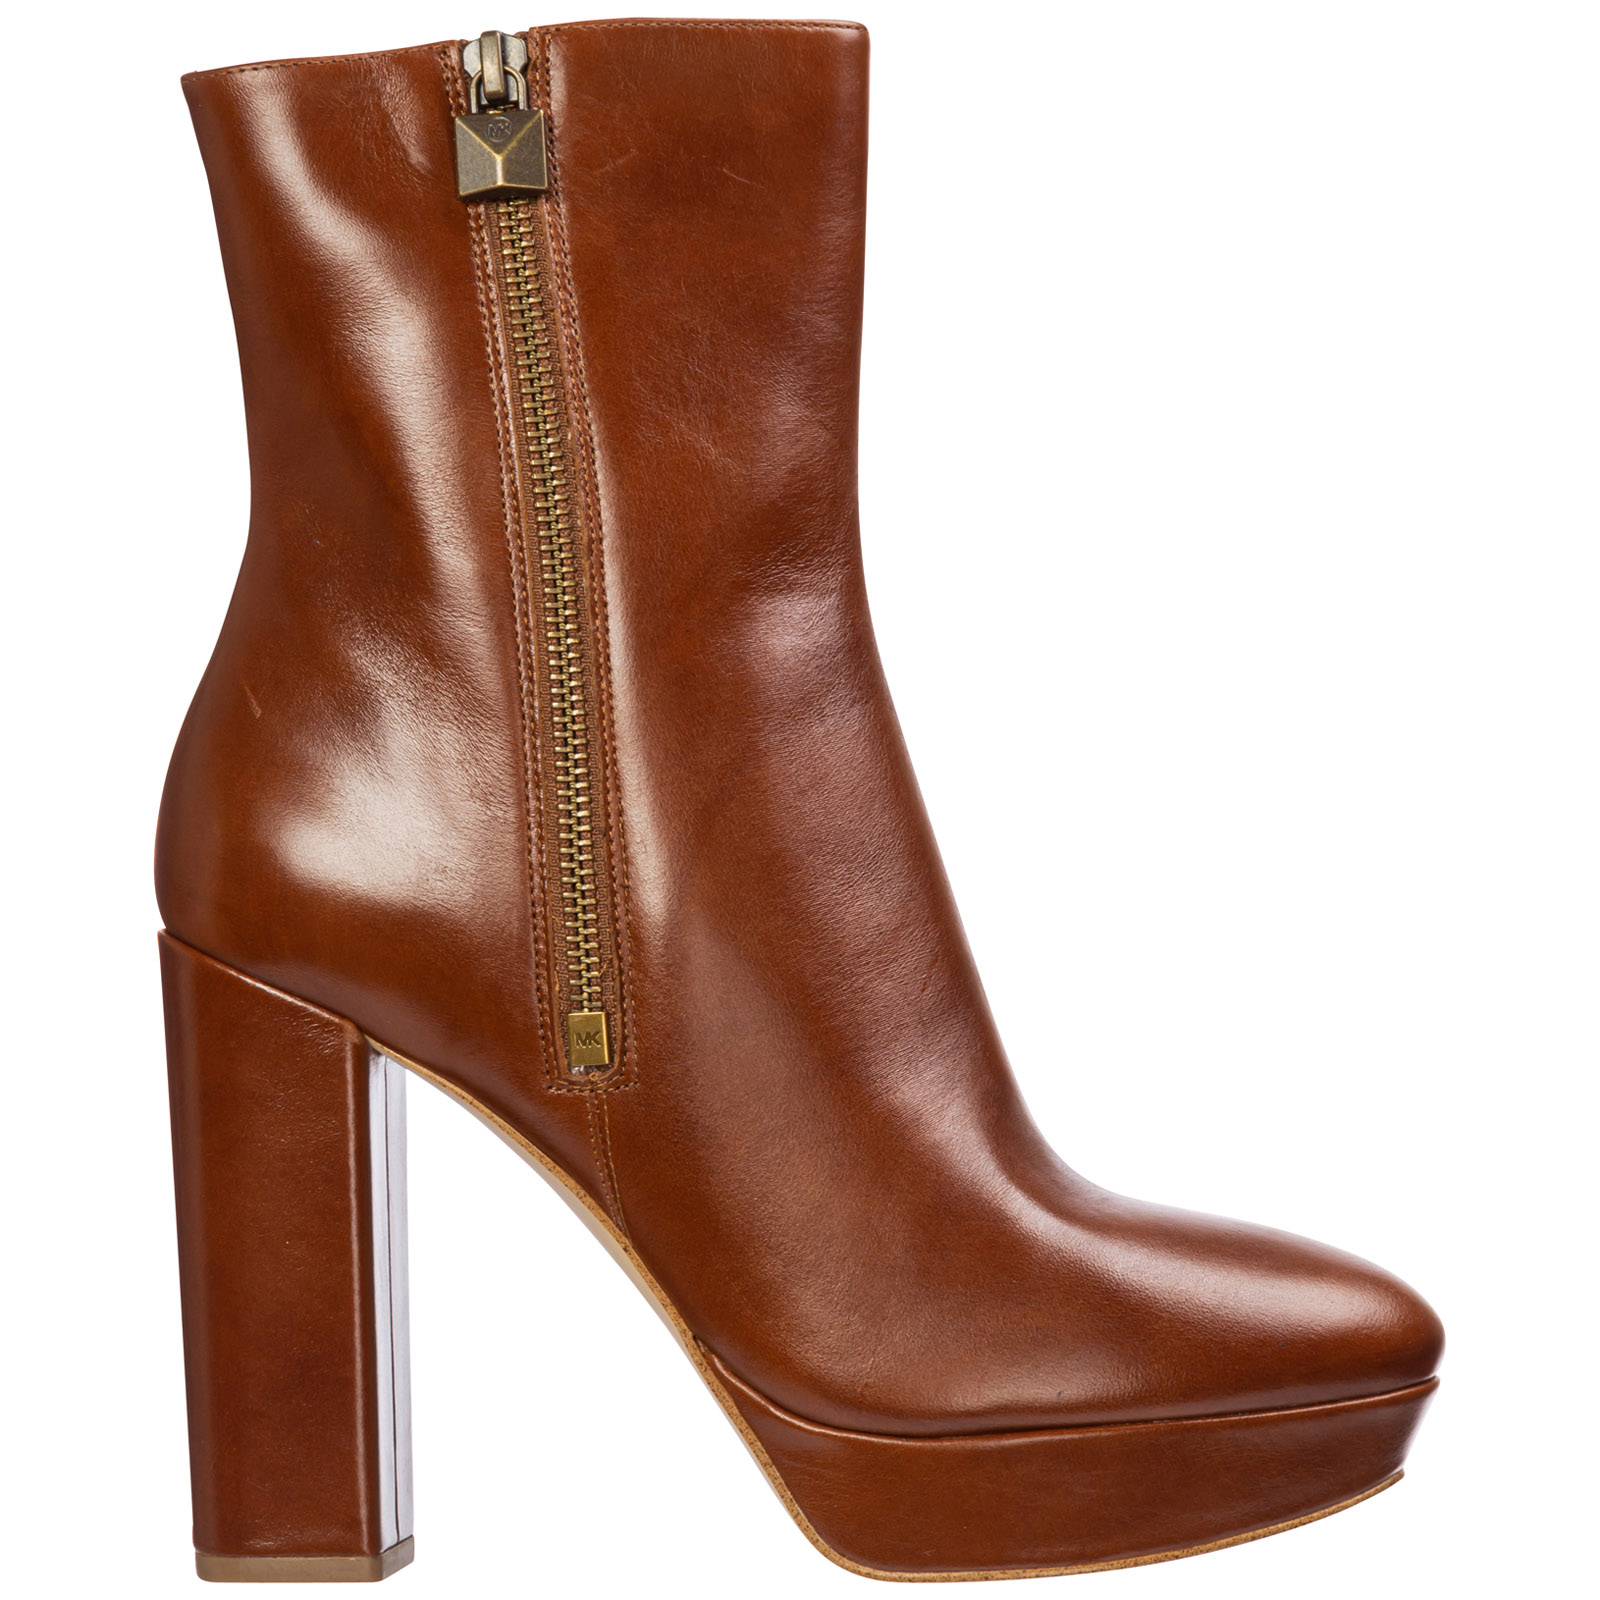 Michael Kors Boots WOMEN'S LEATHER HEEL ANKLE BOOTS BOOTIES FRENCHIE